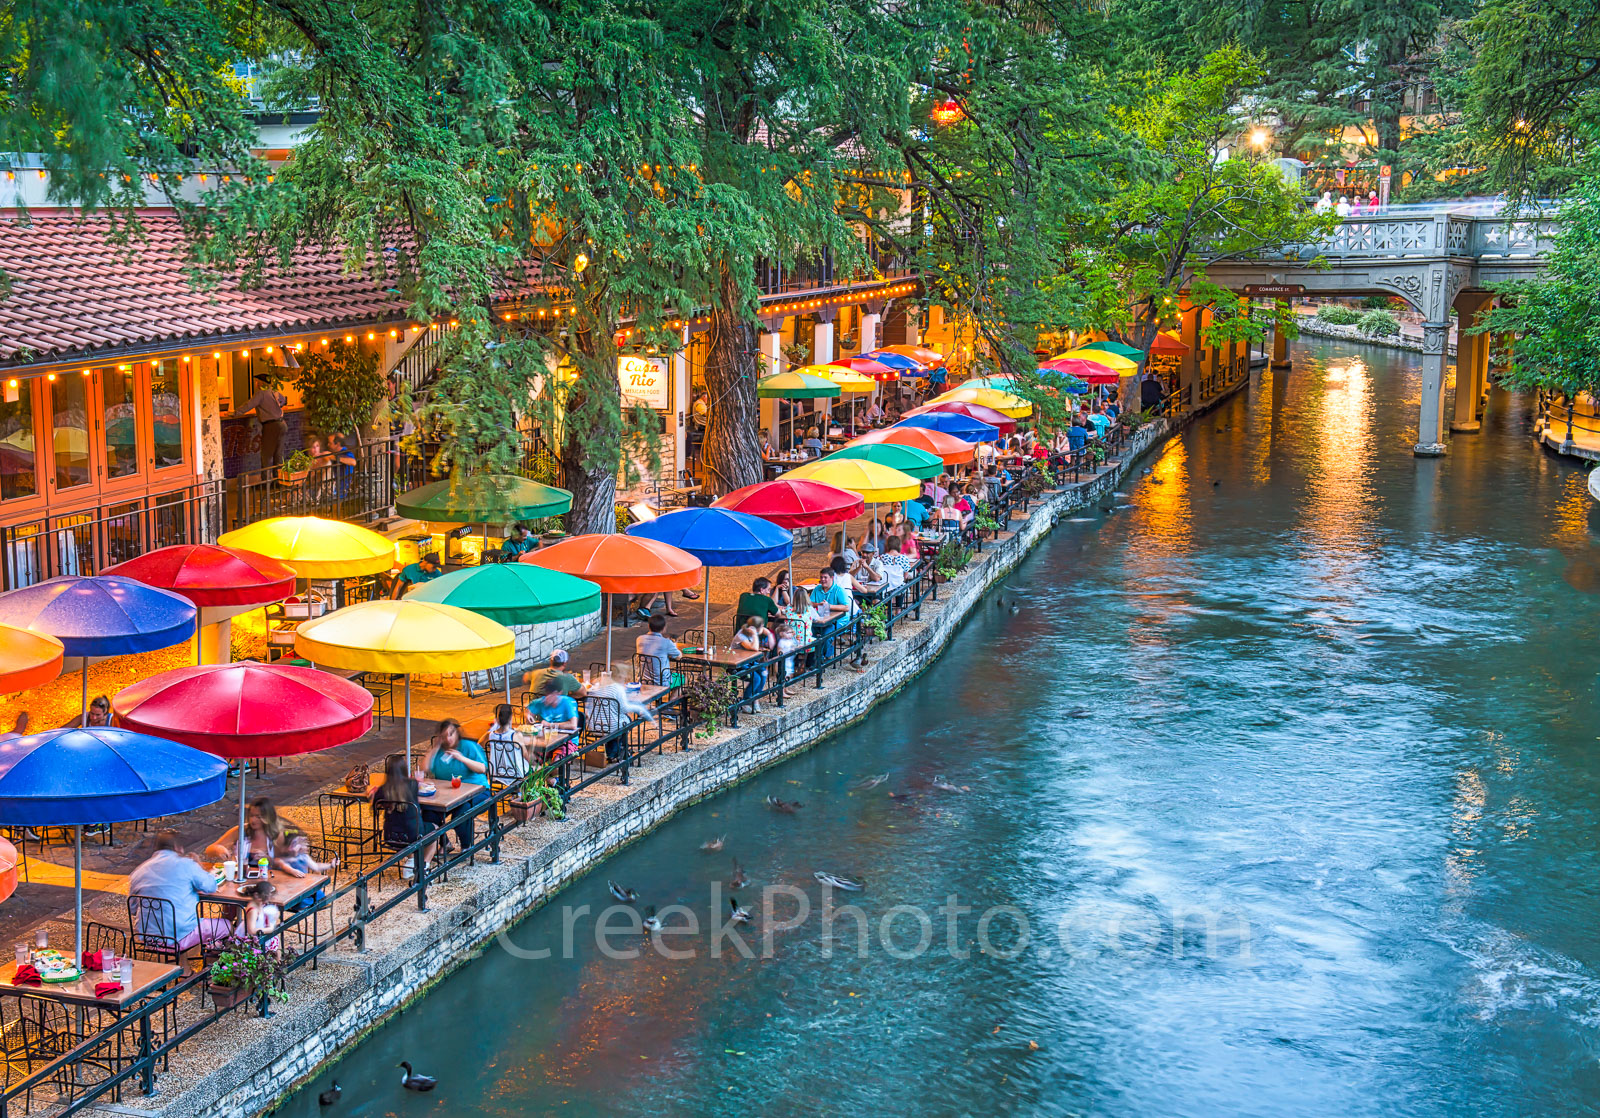 San Antonio River Walk, Casa Rio, River Boat, River Walk, Riverwalk, San Antonio, boat rides, city, cityscape, cityscapes, colorful umbrellas, destinations, downtown, drinks, food, hotels, landmark, o